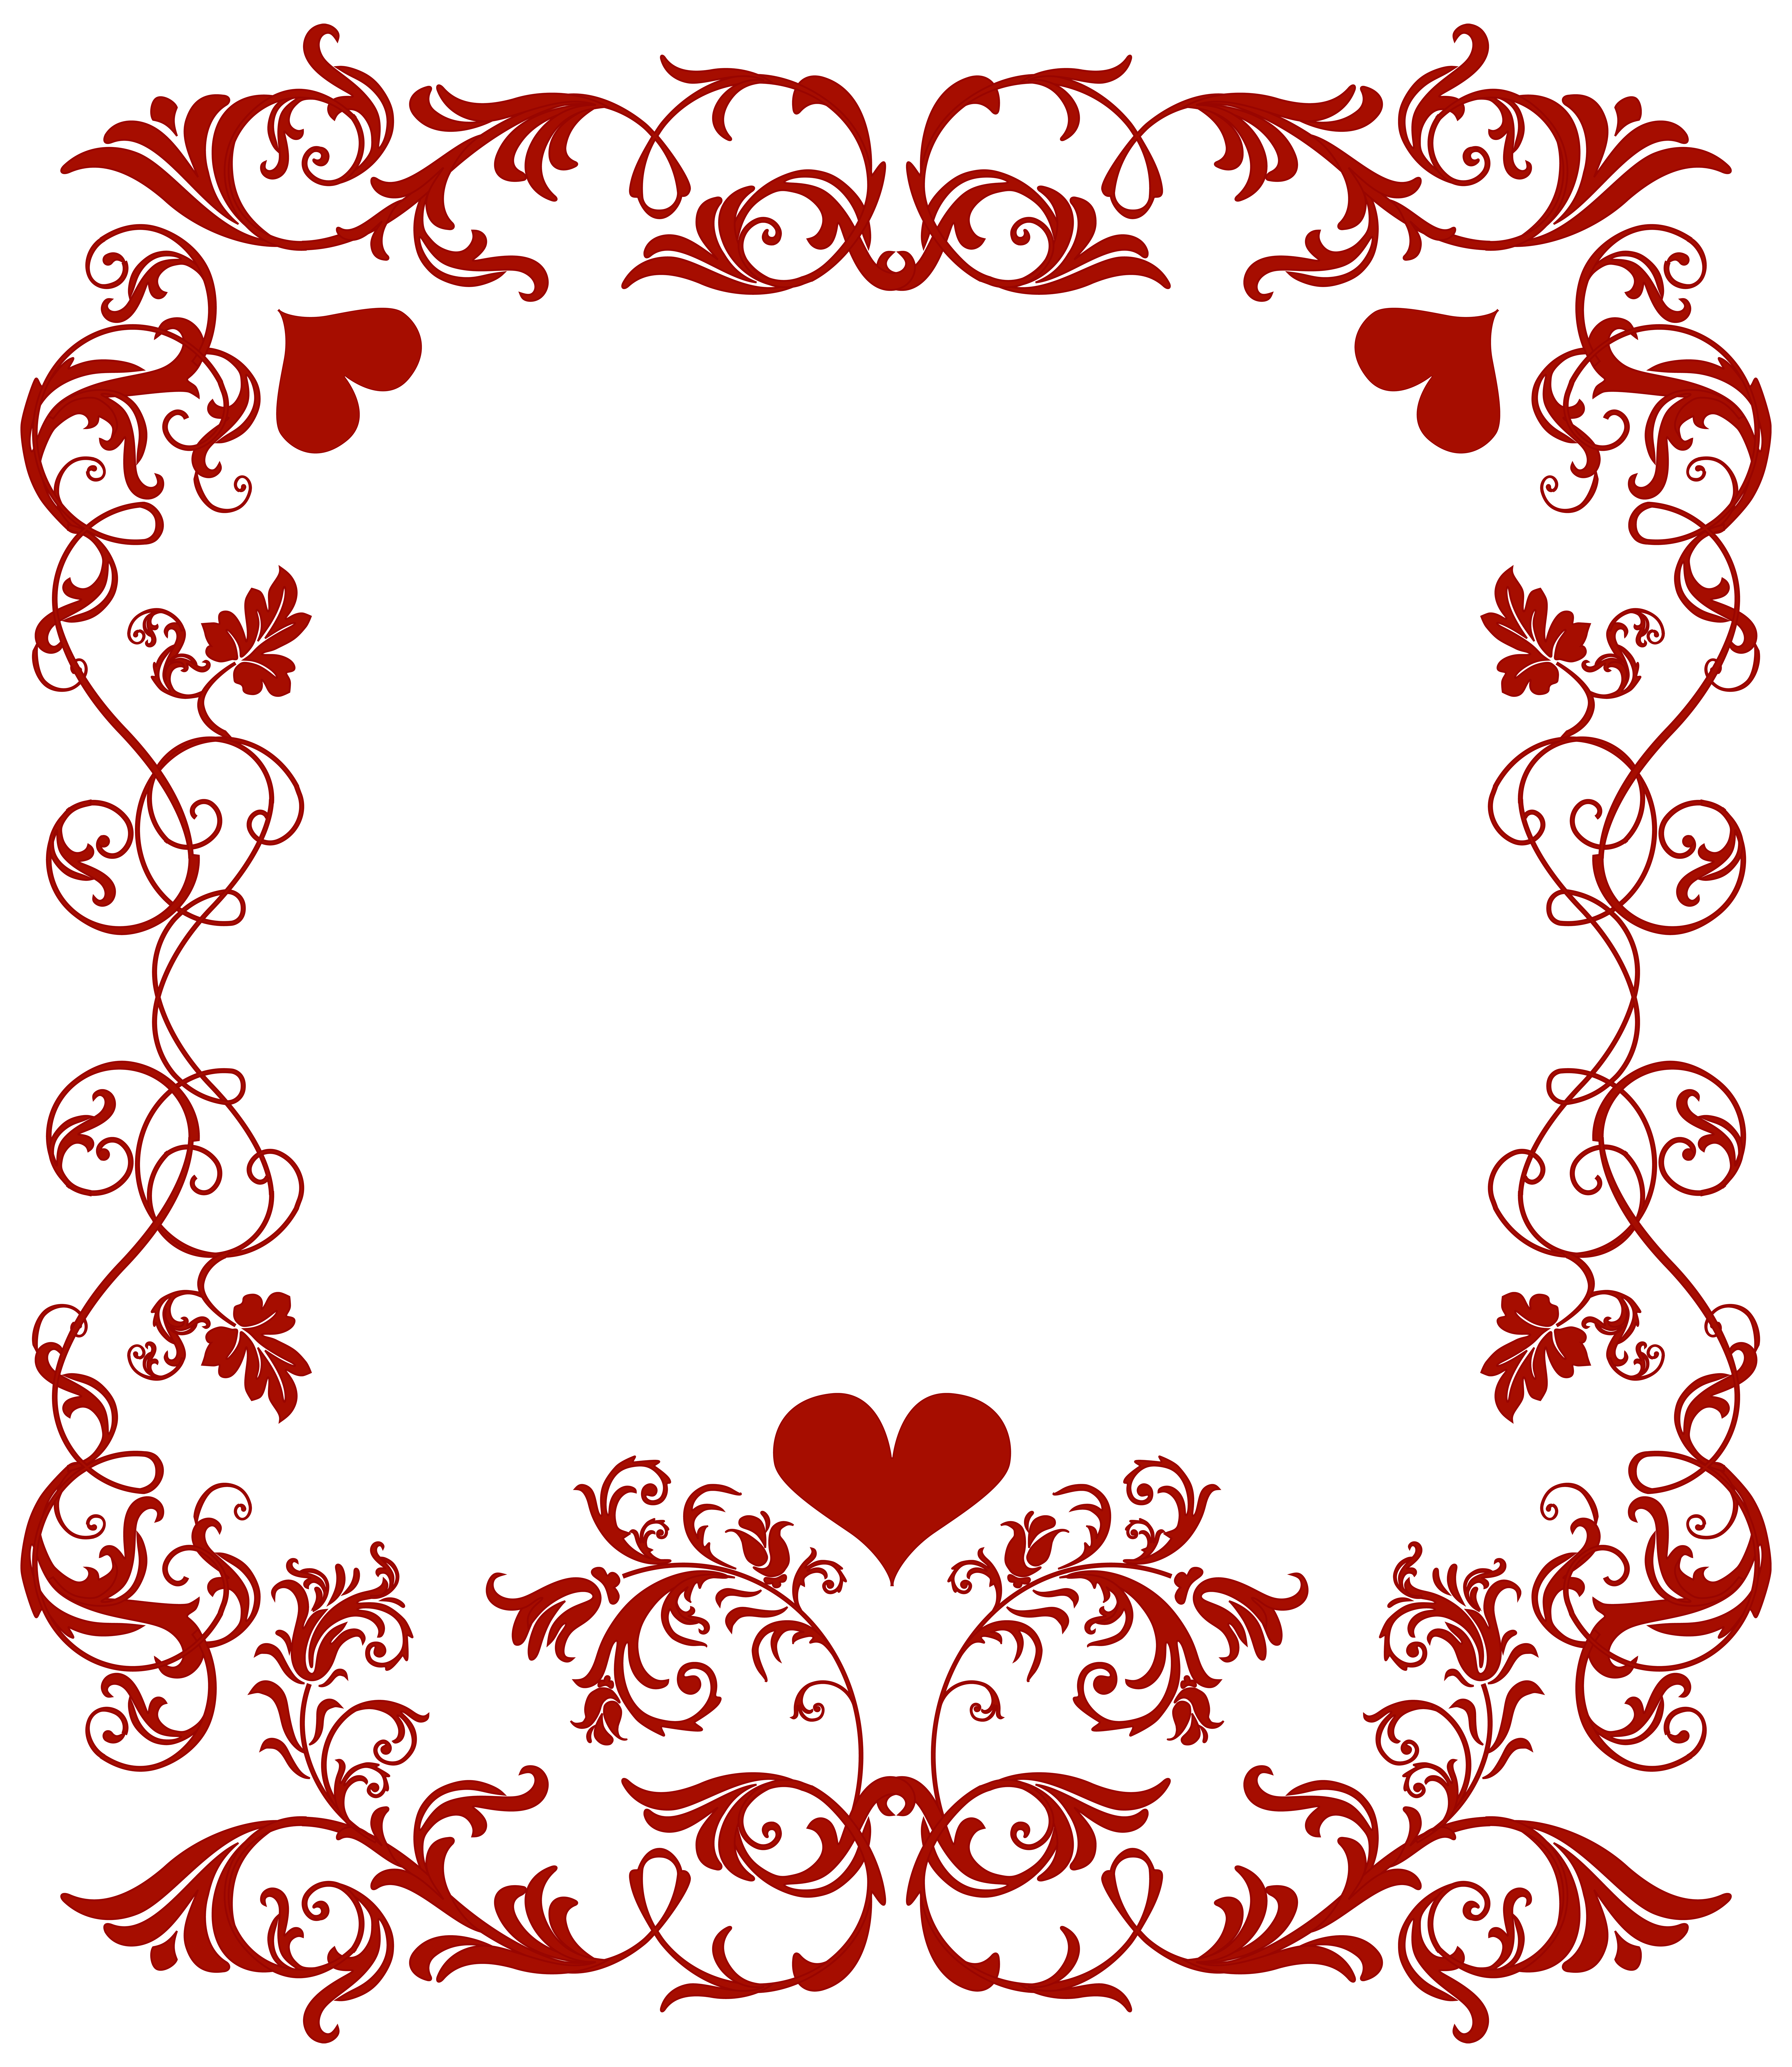 Valentines Day Clipart For Kids At Getdrawings Com Free For